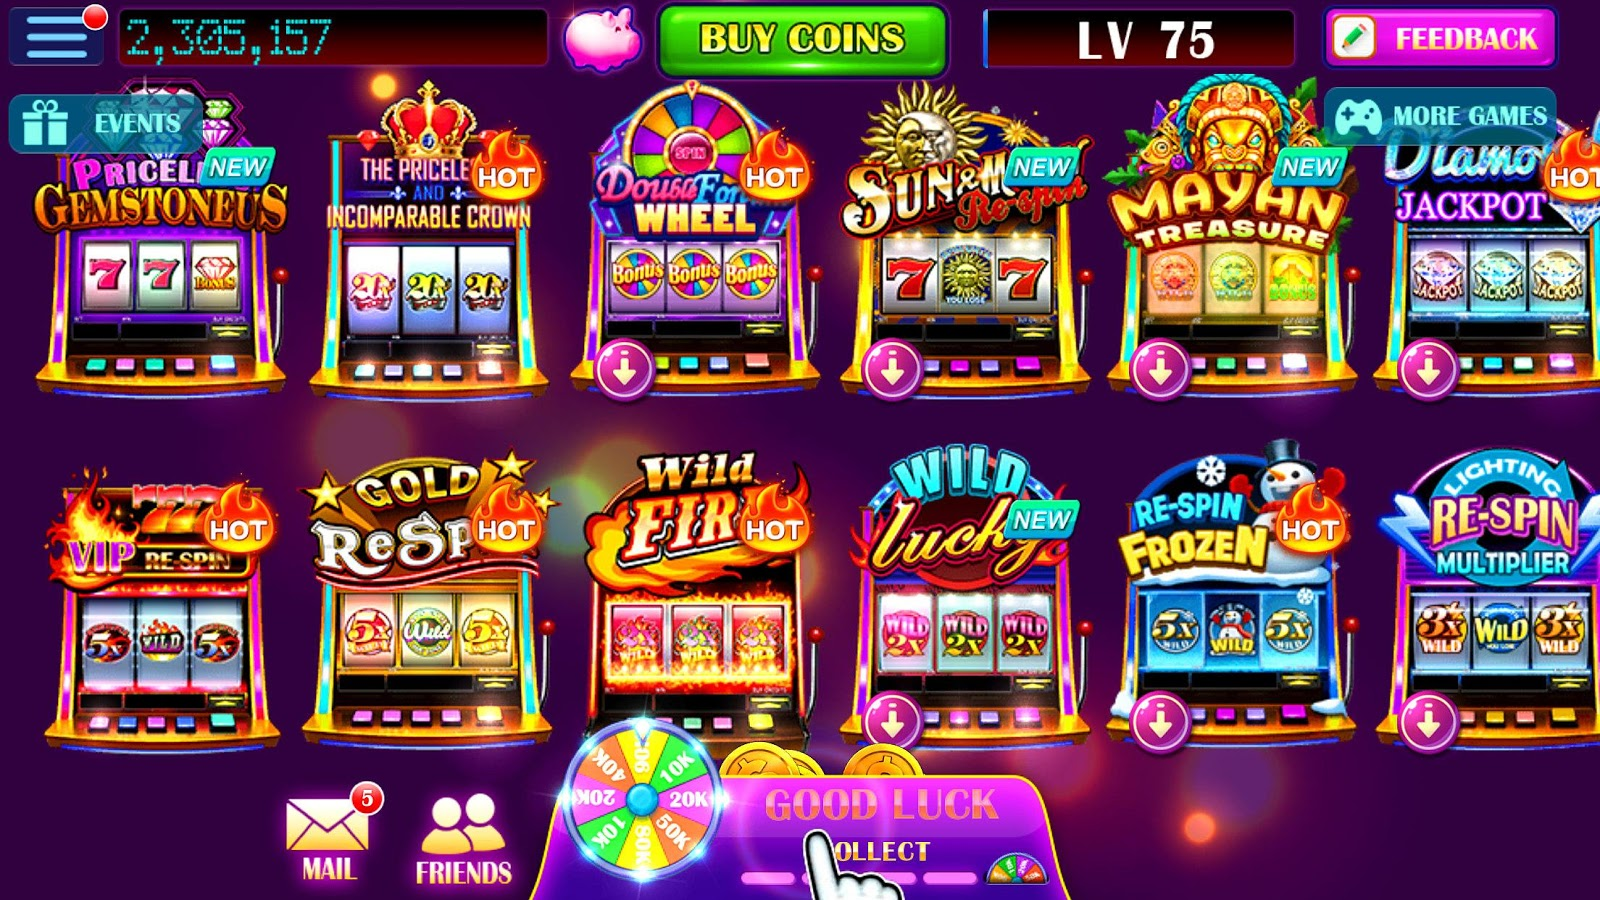 Wild Wild Bill Slot Machine - Play it Now for Free